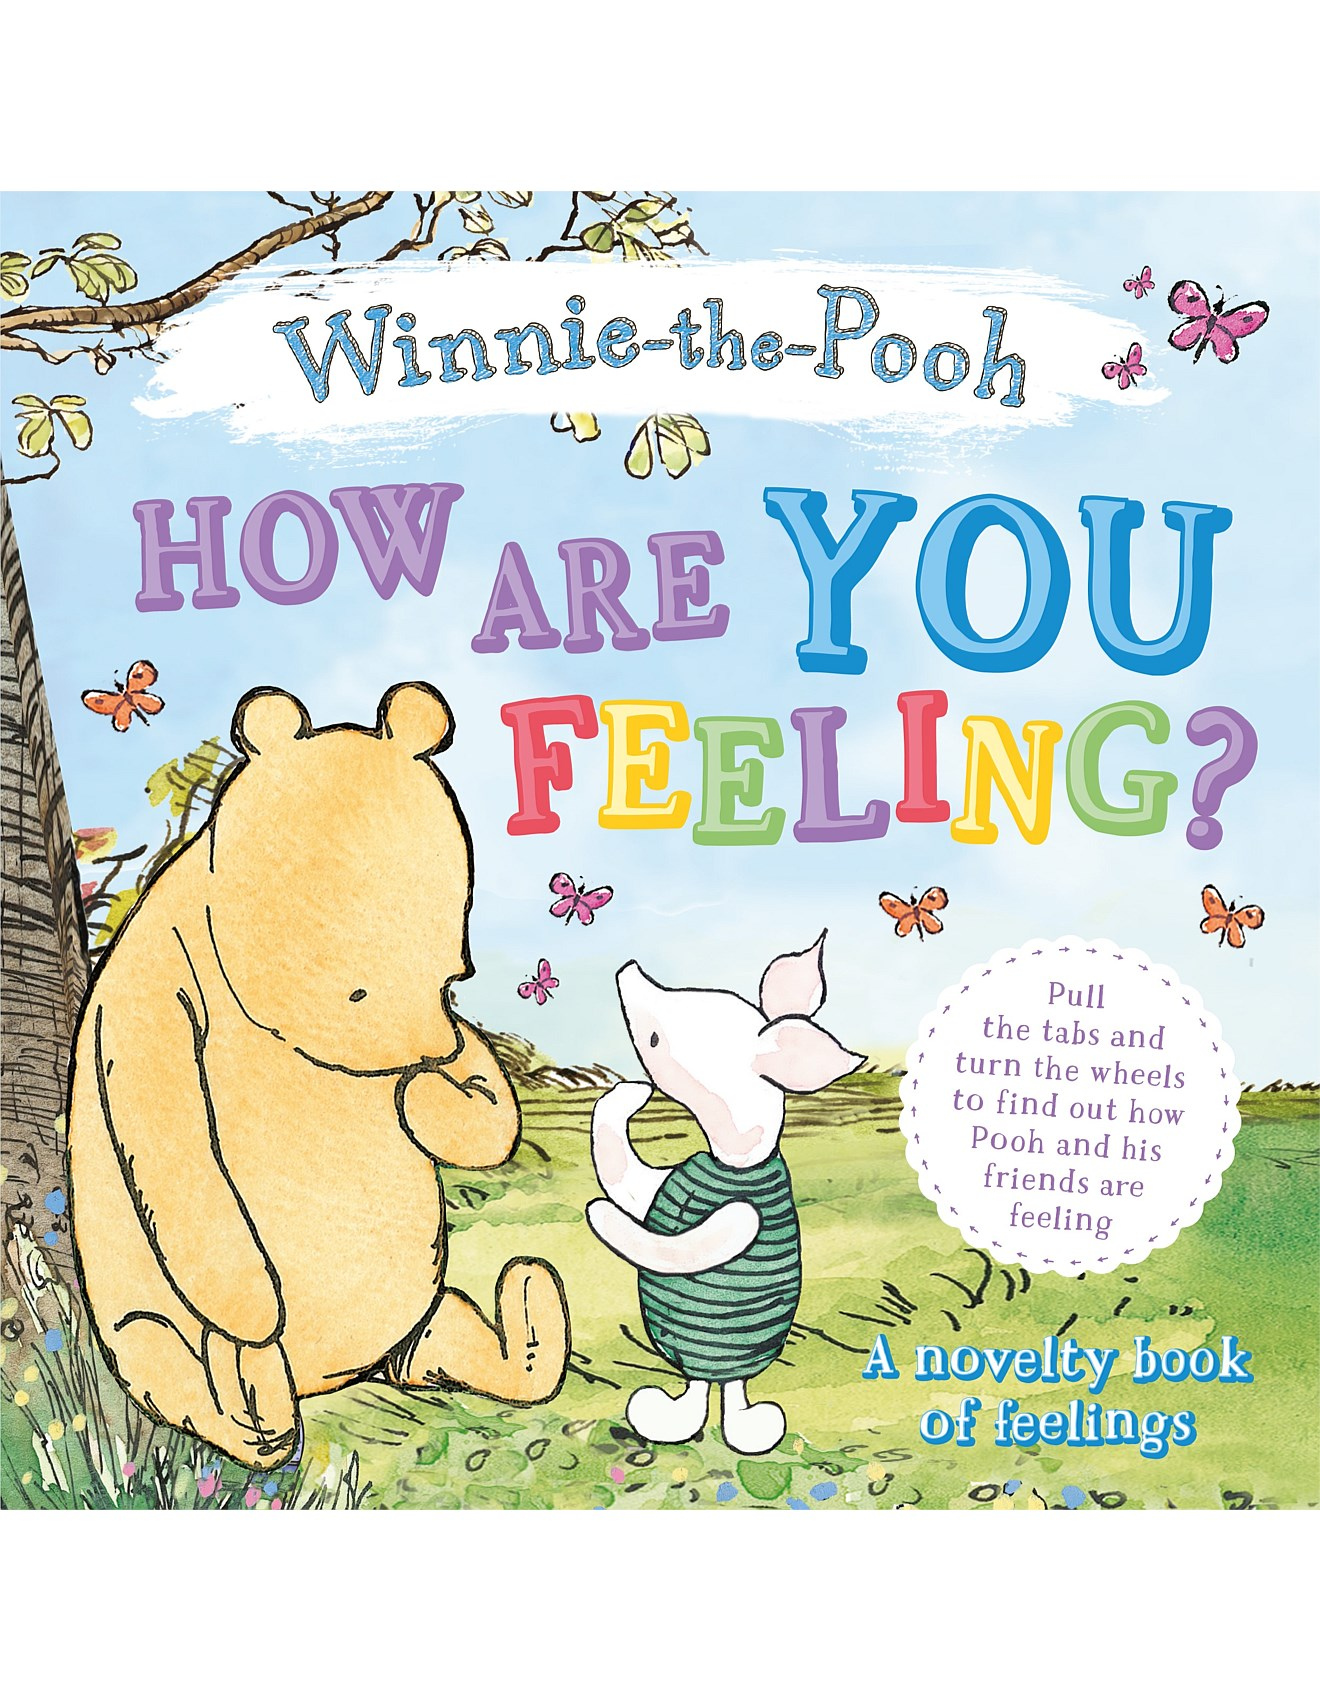 1513fc80a053 Winnie-the-Pooh - How Are You Feeling